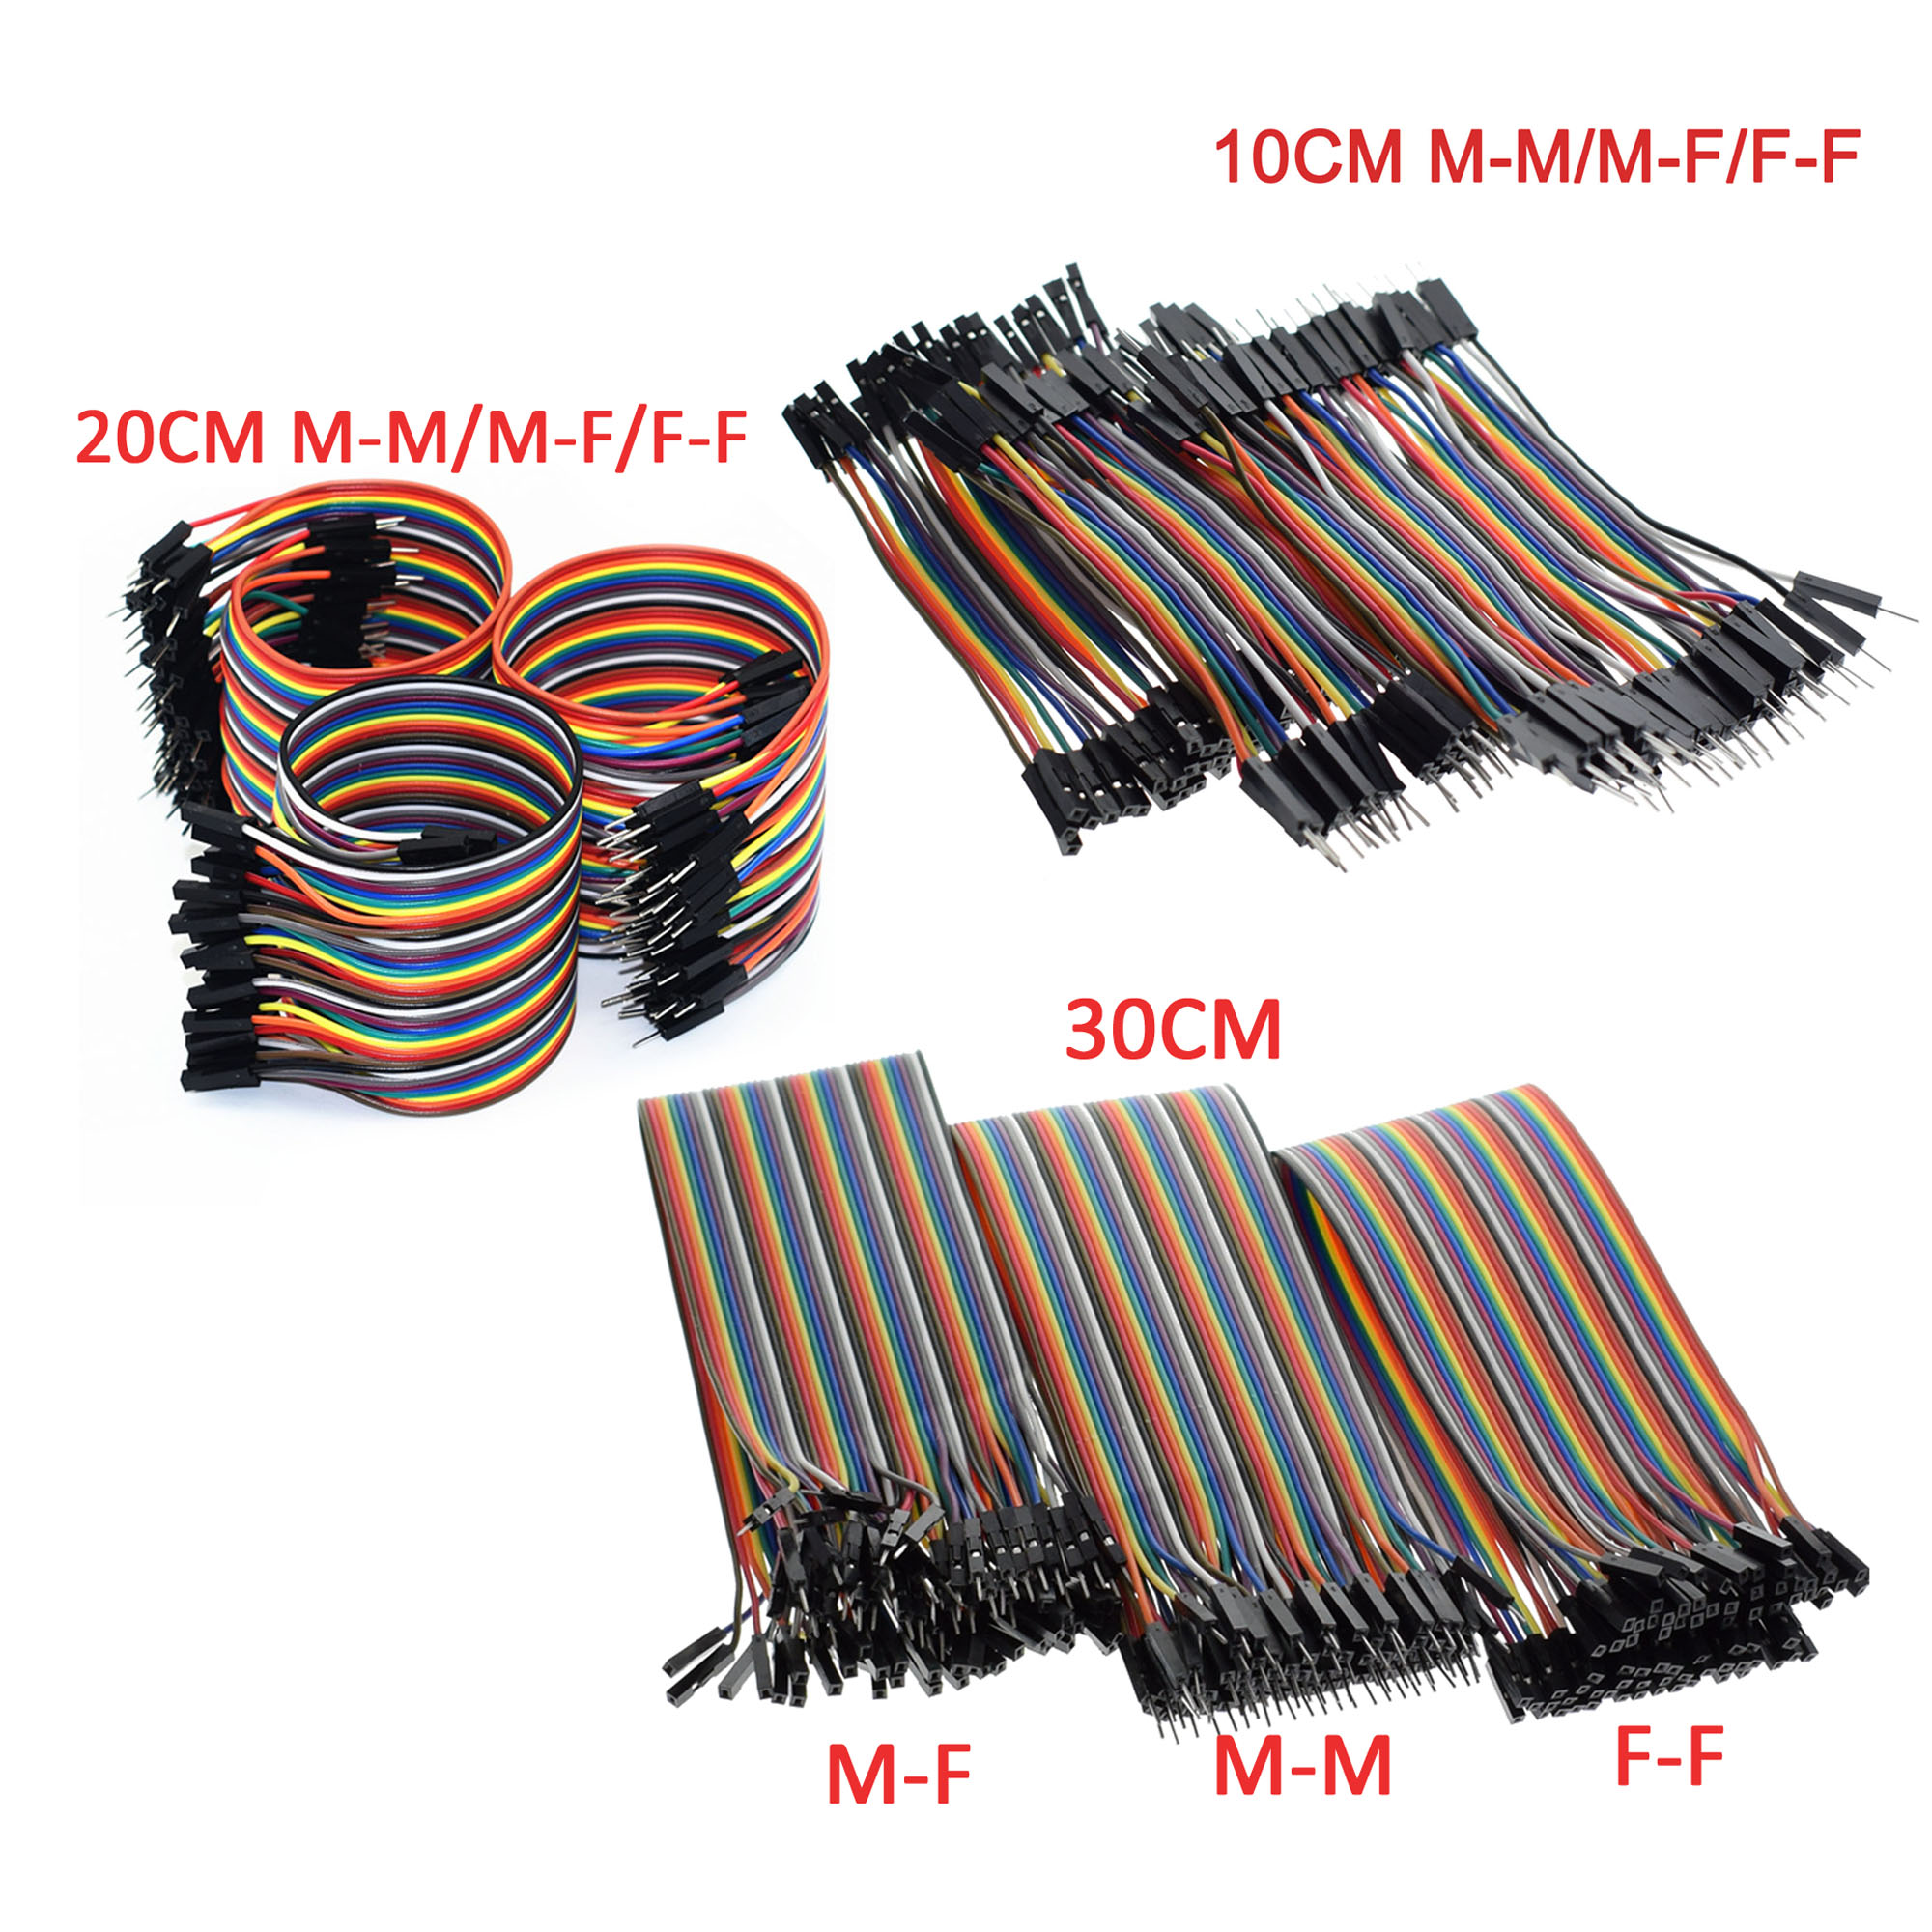 F-f m-f 40pin dupont Jumper Wire 10cm//20cm cable M-M